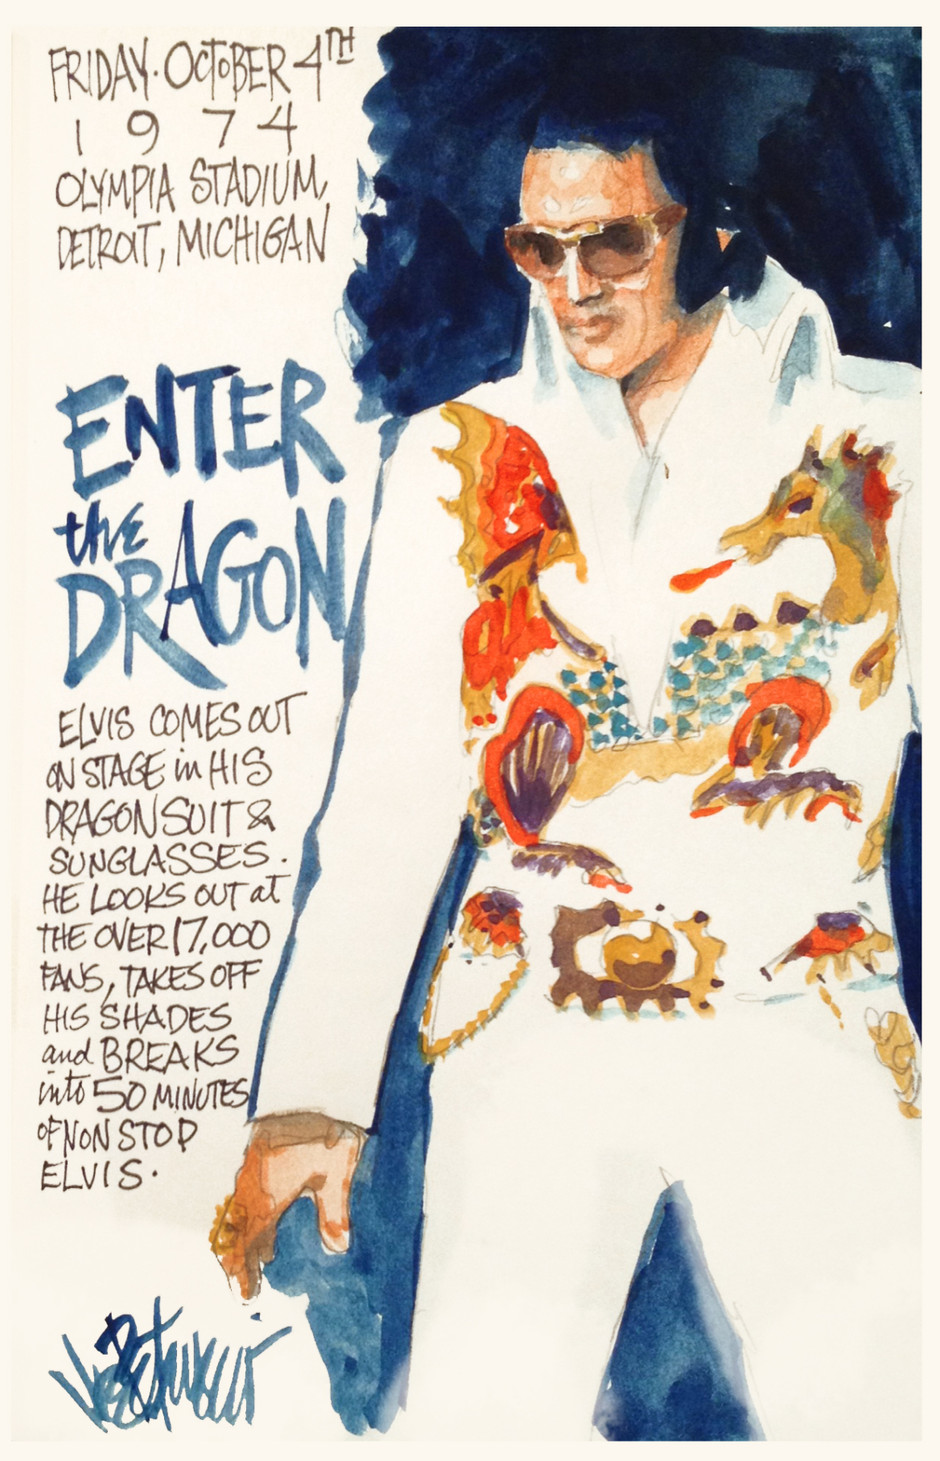 THIS DAY IN ELVIS HISTORY... ENTER THE DRAGON